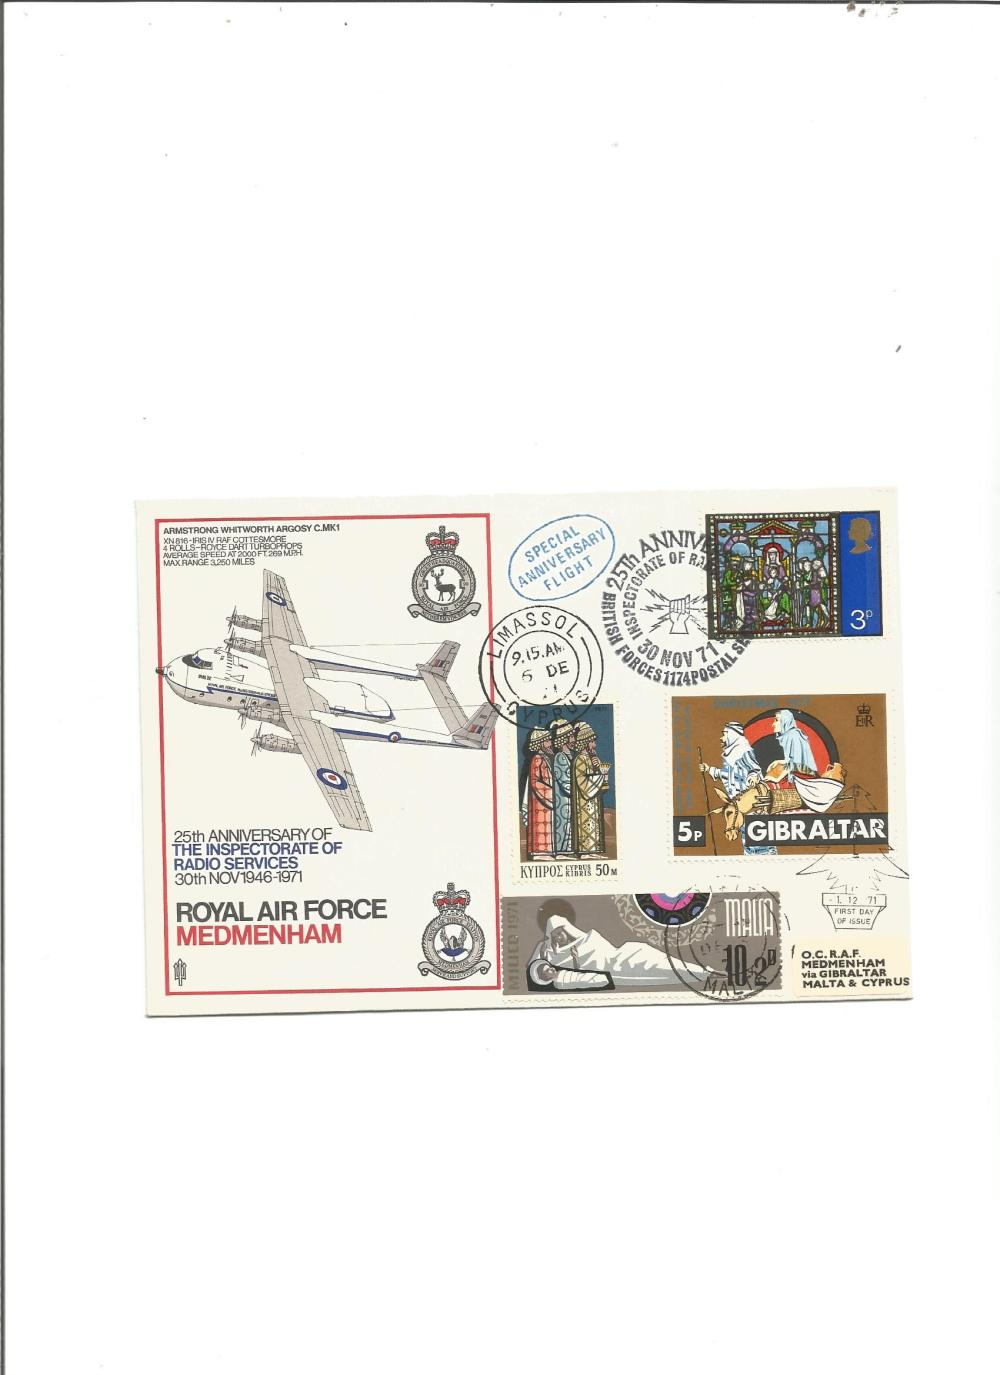 Rare 1971 RAF Medmenham 25th ann Radio Inspectorate cover, flown from UK to Cyprus, Malta, Gibraltar